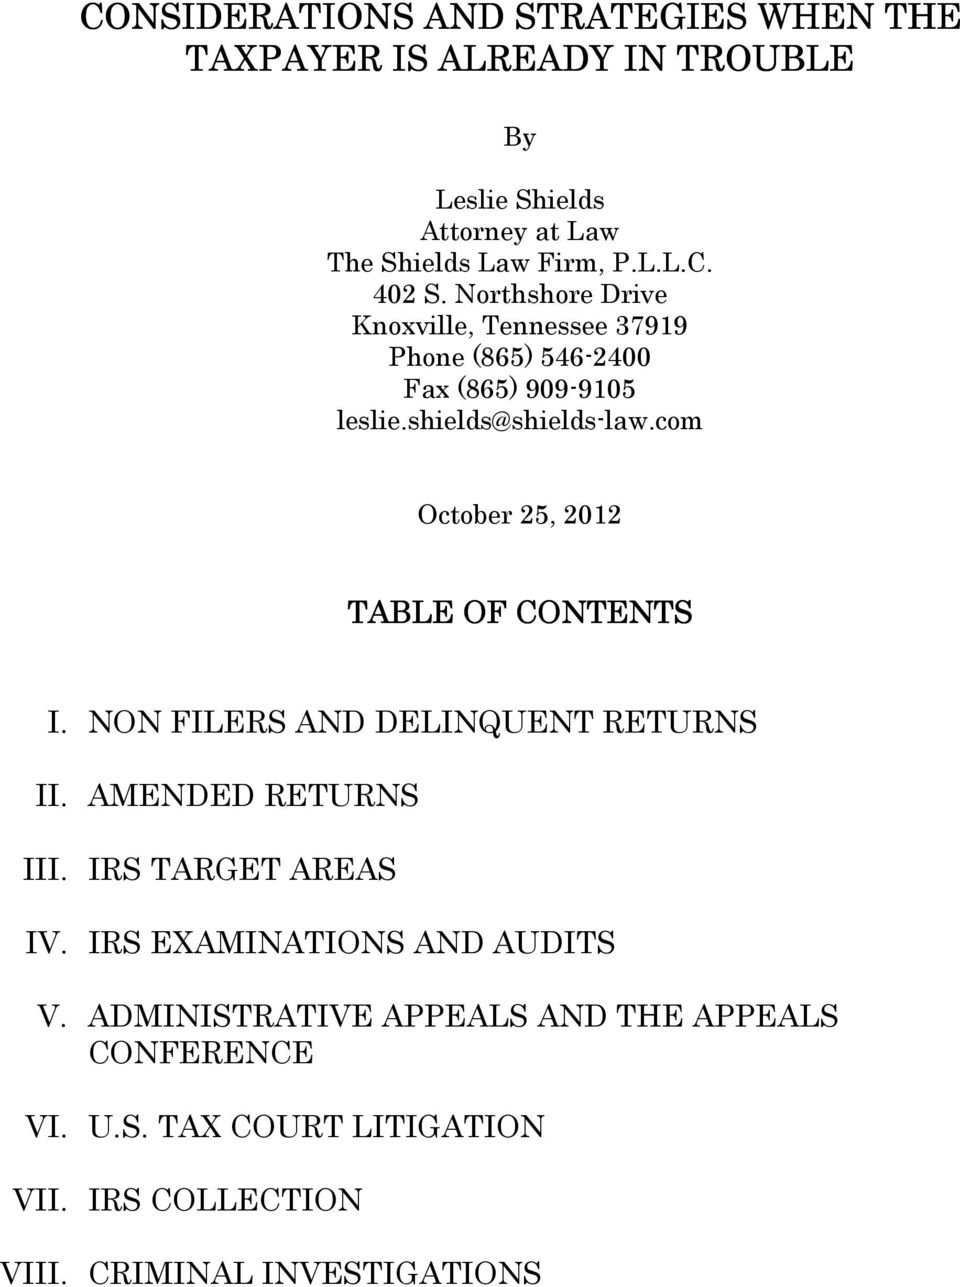 com October 25, 2012 TABLE OF CONTENTS I. NON FILERS AND DELINQUENT RETURNS II. AMENDED RETURNS III. IRS TARGET AREAS IV.